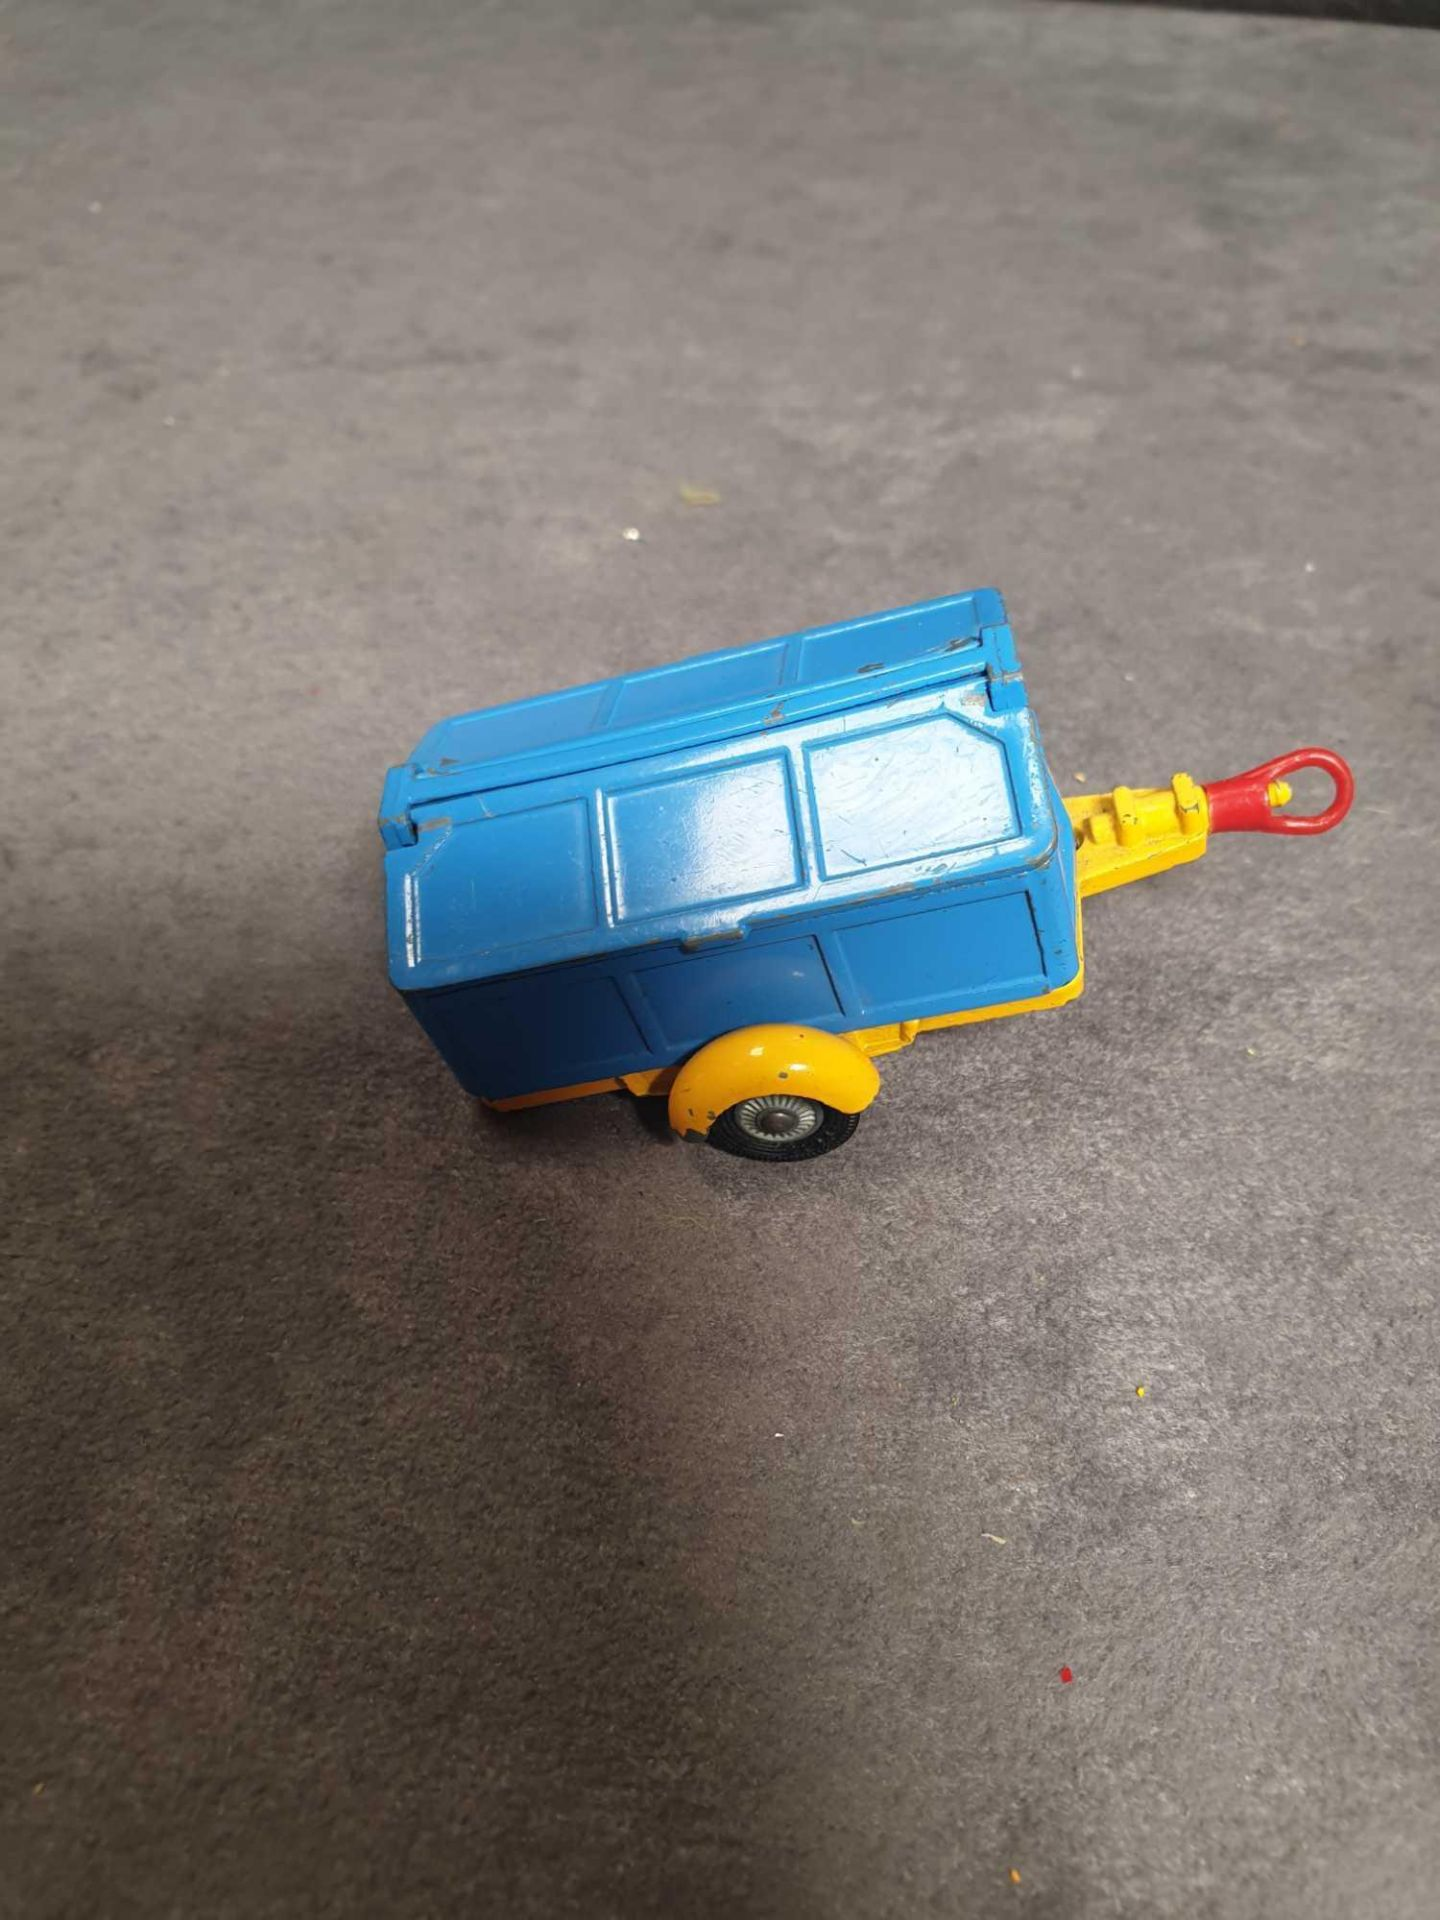 Very Good Corgi Diecast Unboxed #109 Pennyburn Trailer Blue/Yellow - Image 3 of 4